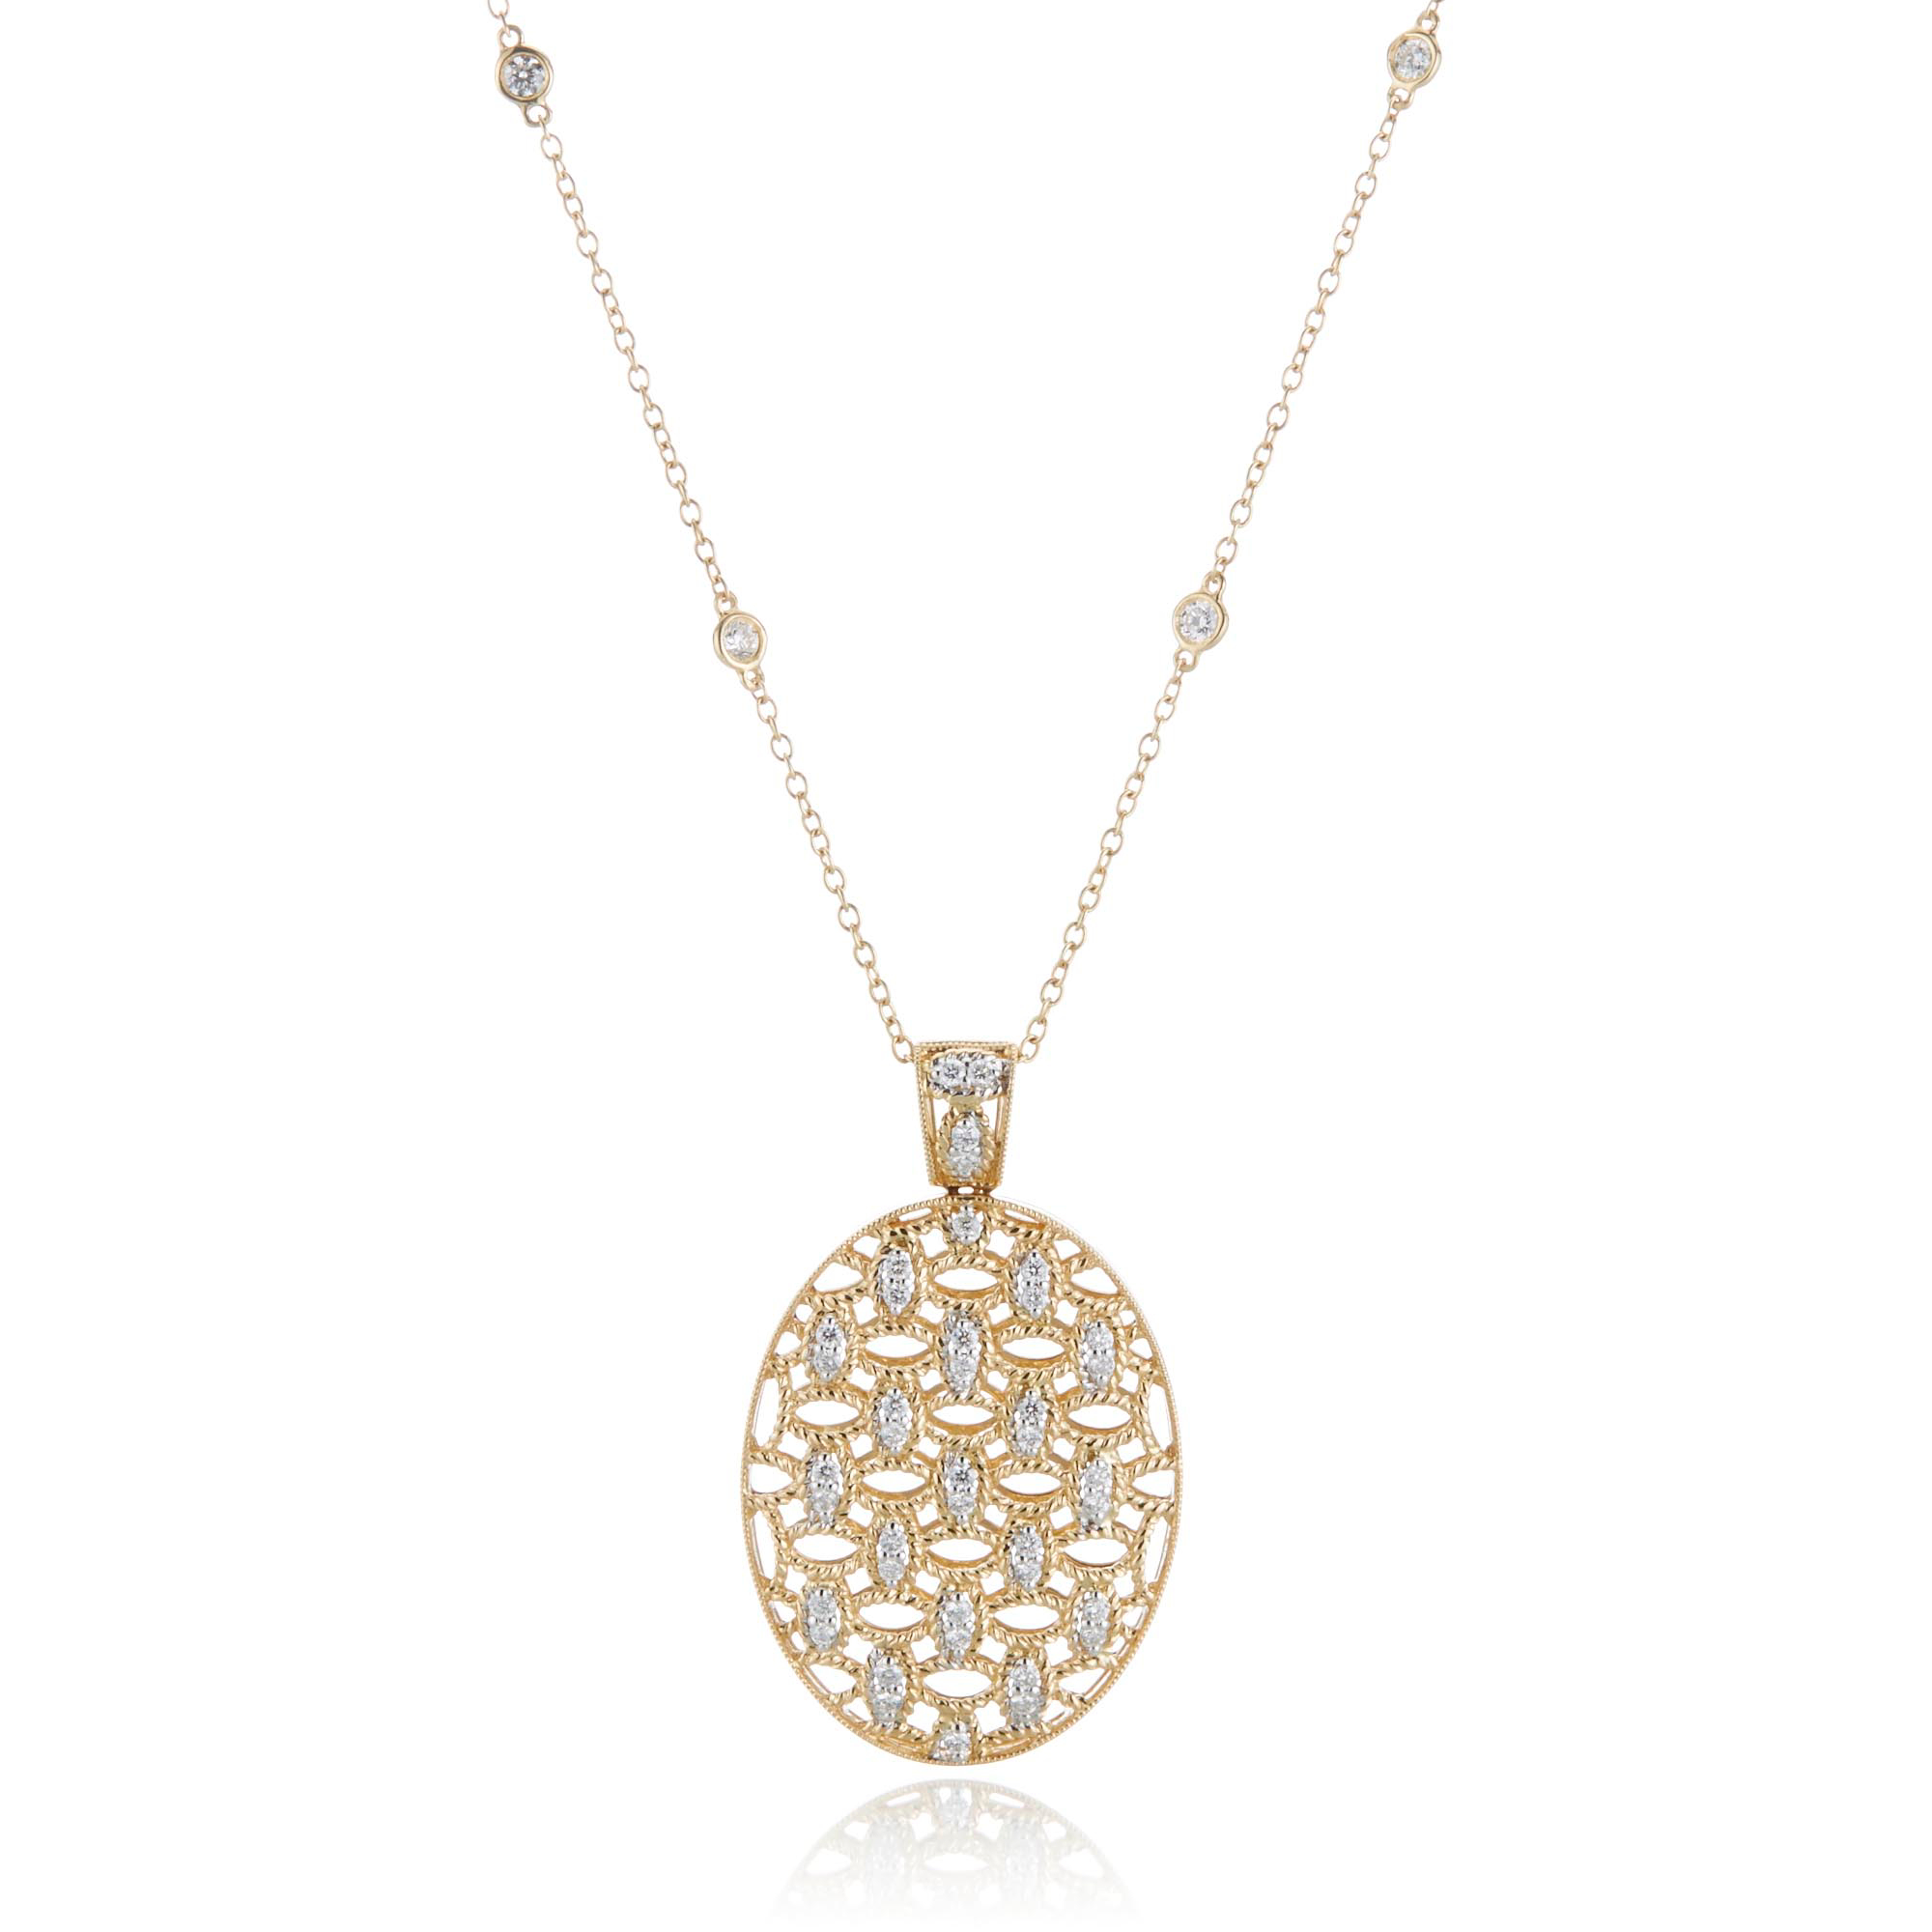 Openwork Oval Diamond Egg Necklace